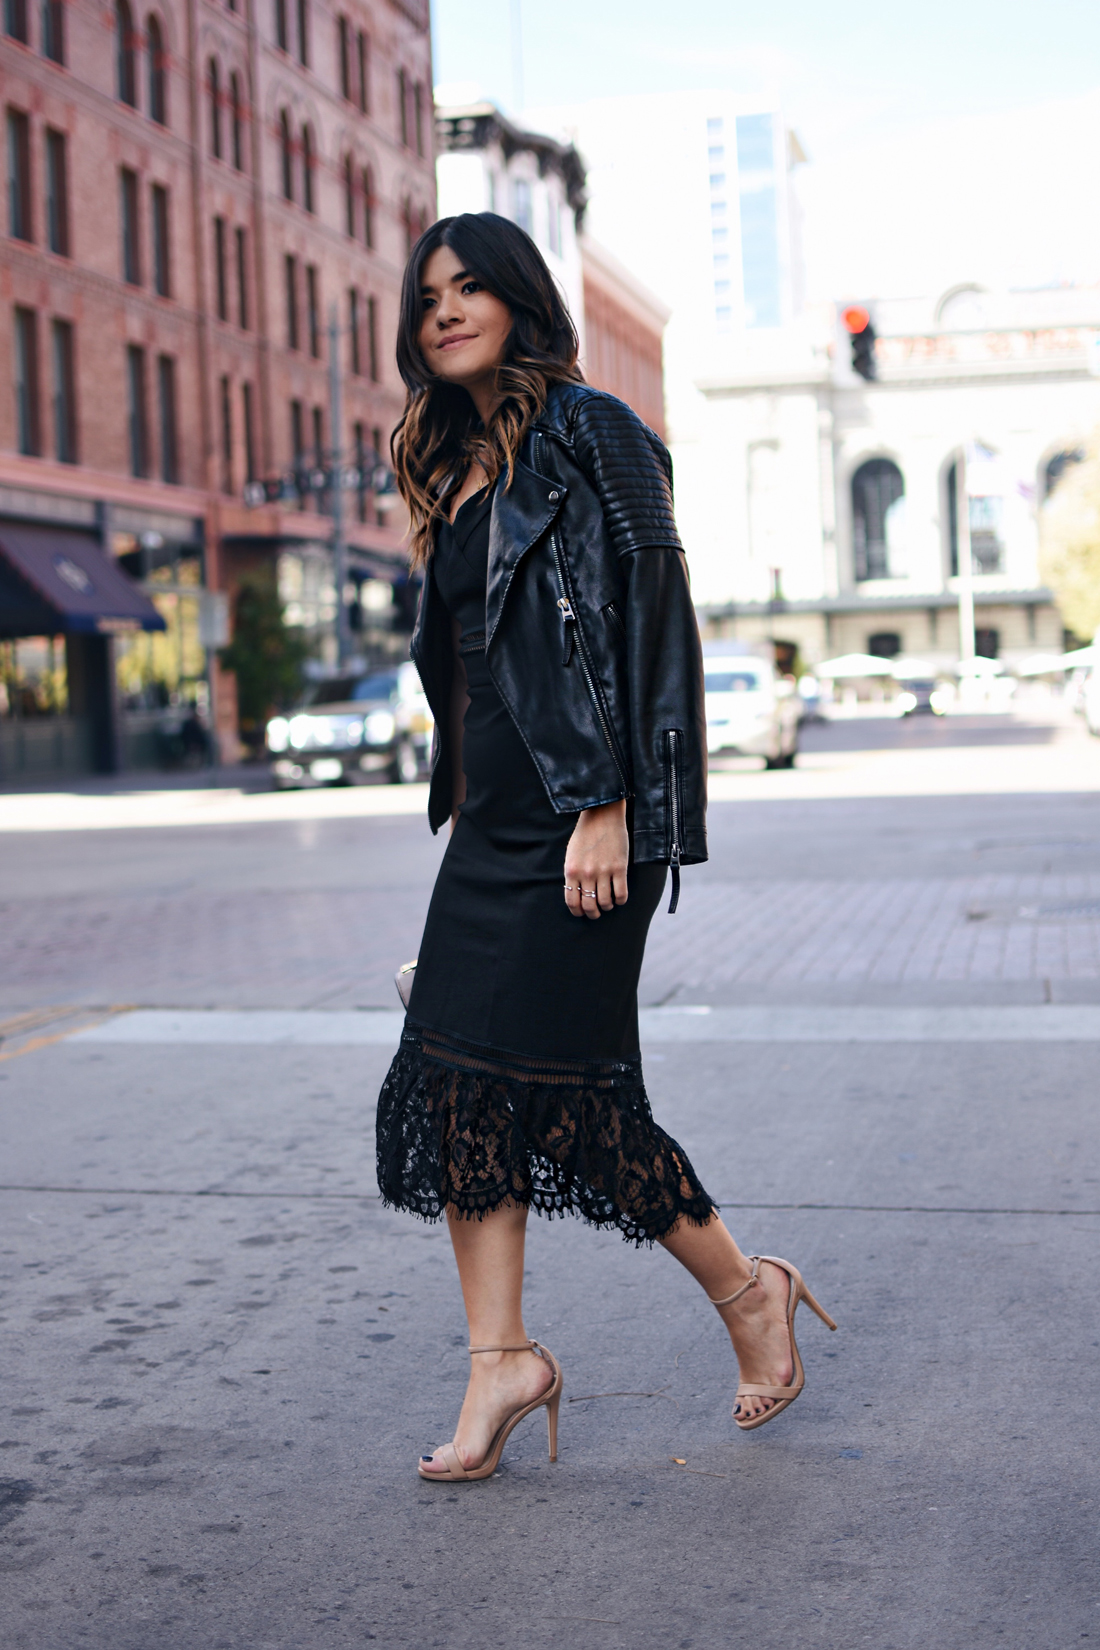 Carolina Hellal of Chic Talk wearing a total black look with a Chicwish dress and Topshop faux leather jacket